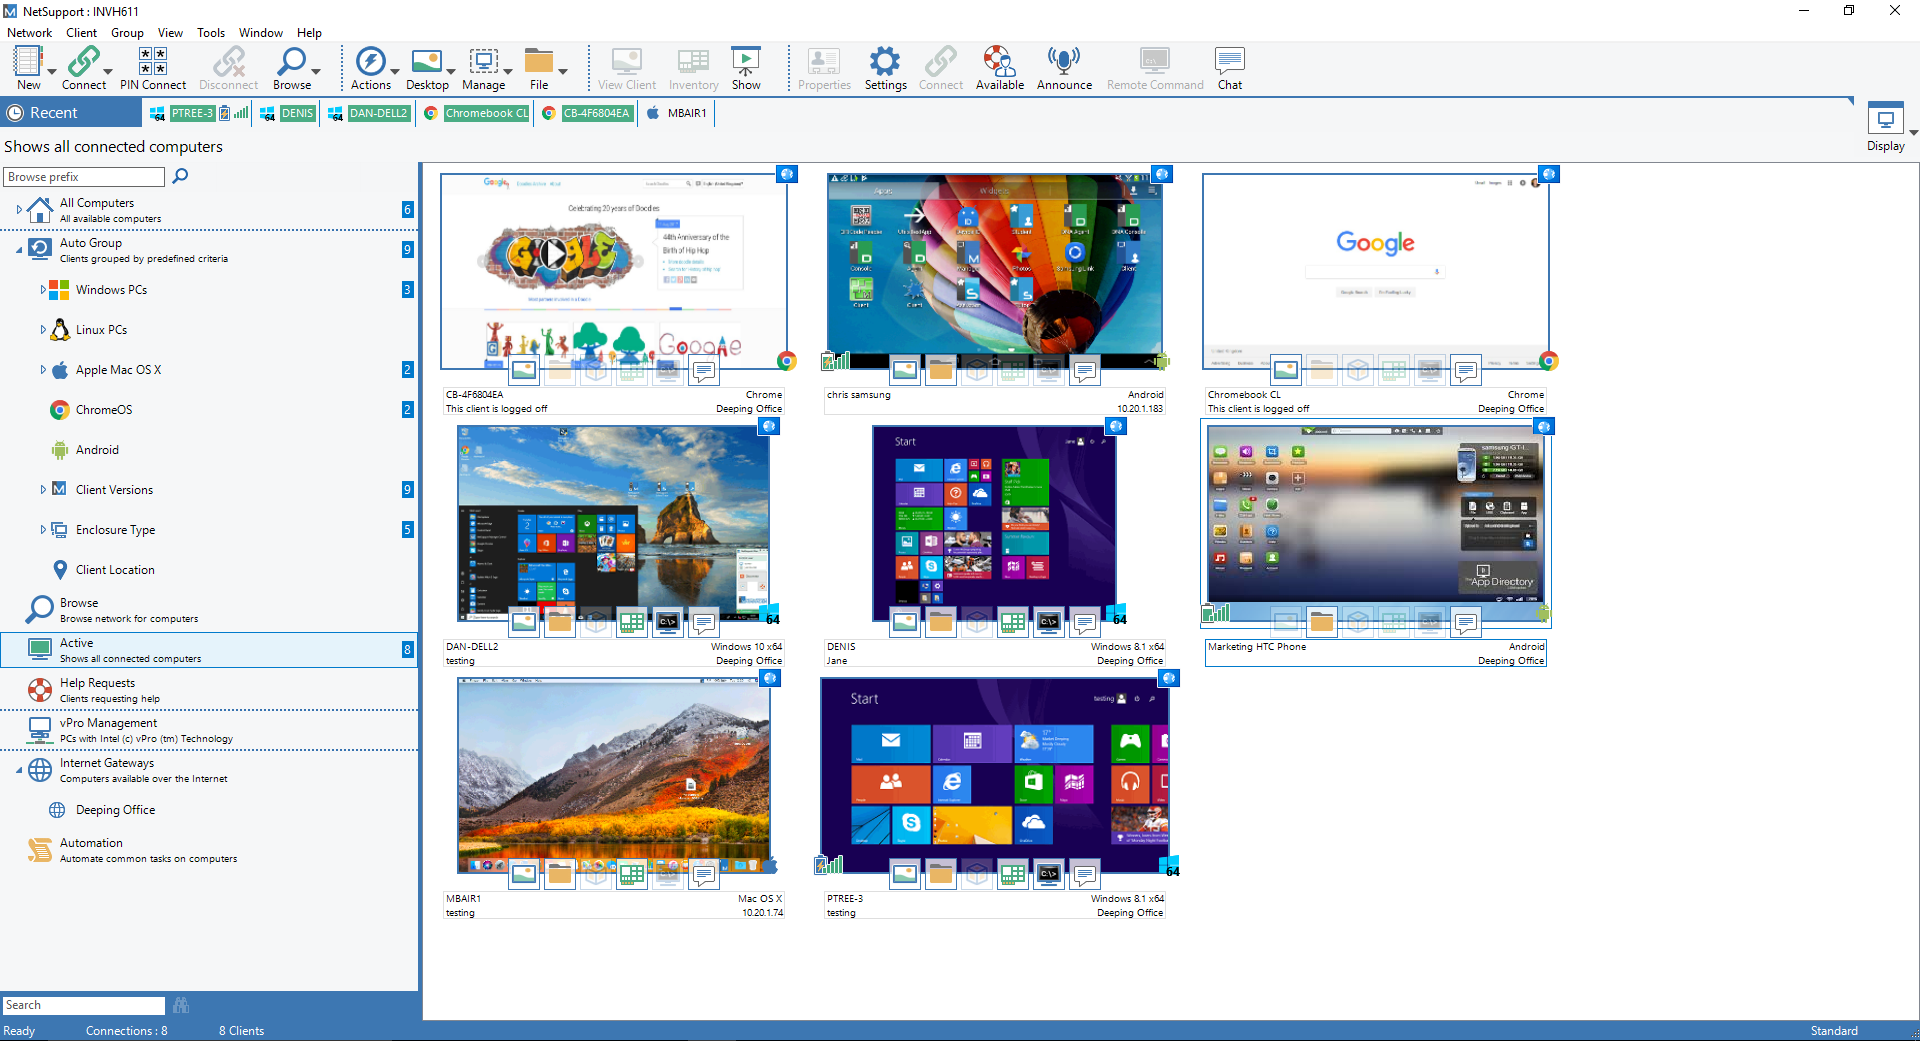 NetSupport Manager Thumbnail View - Monitor multiple devices in a single view.